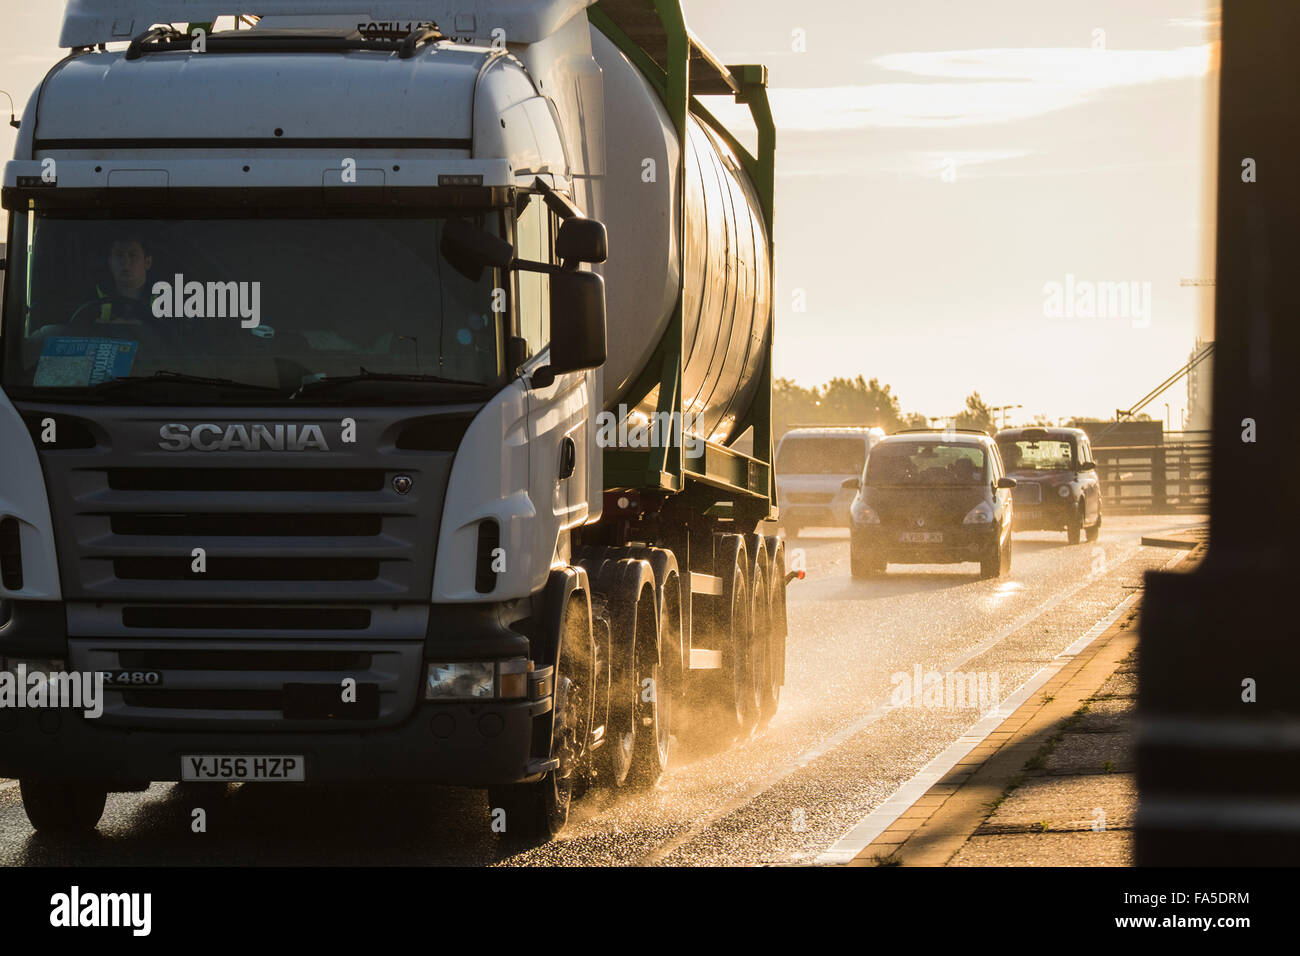 Tanker lorry, London, England, U.K. - Stock Image